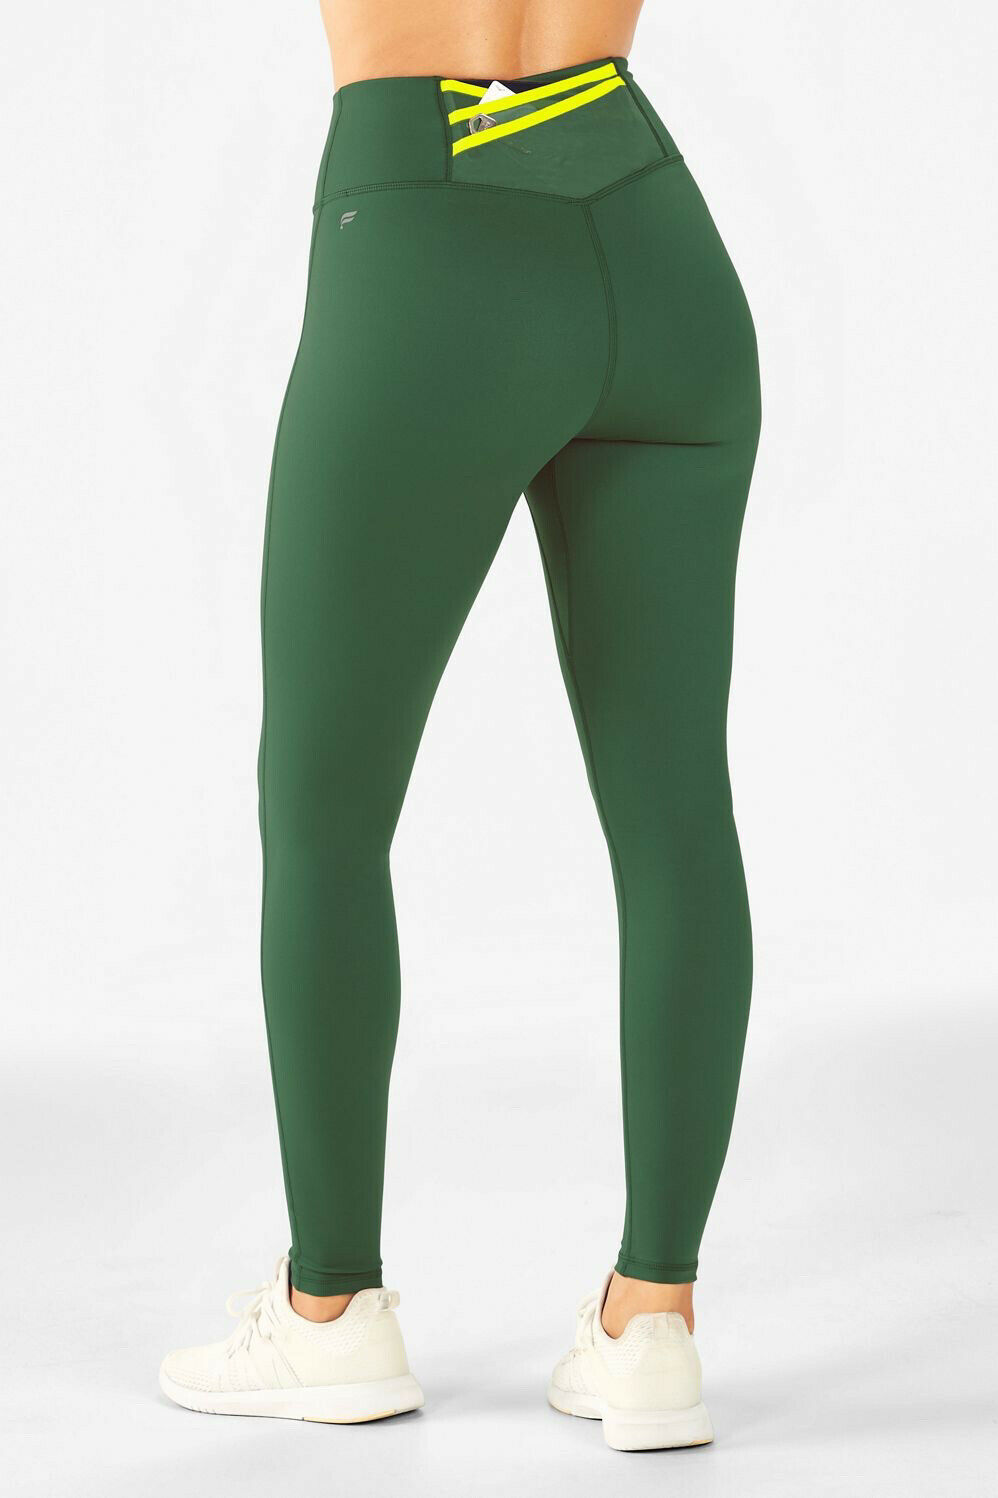 Fabletics Trinity high-waisted pocket legging Forest Green XS